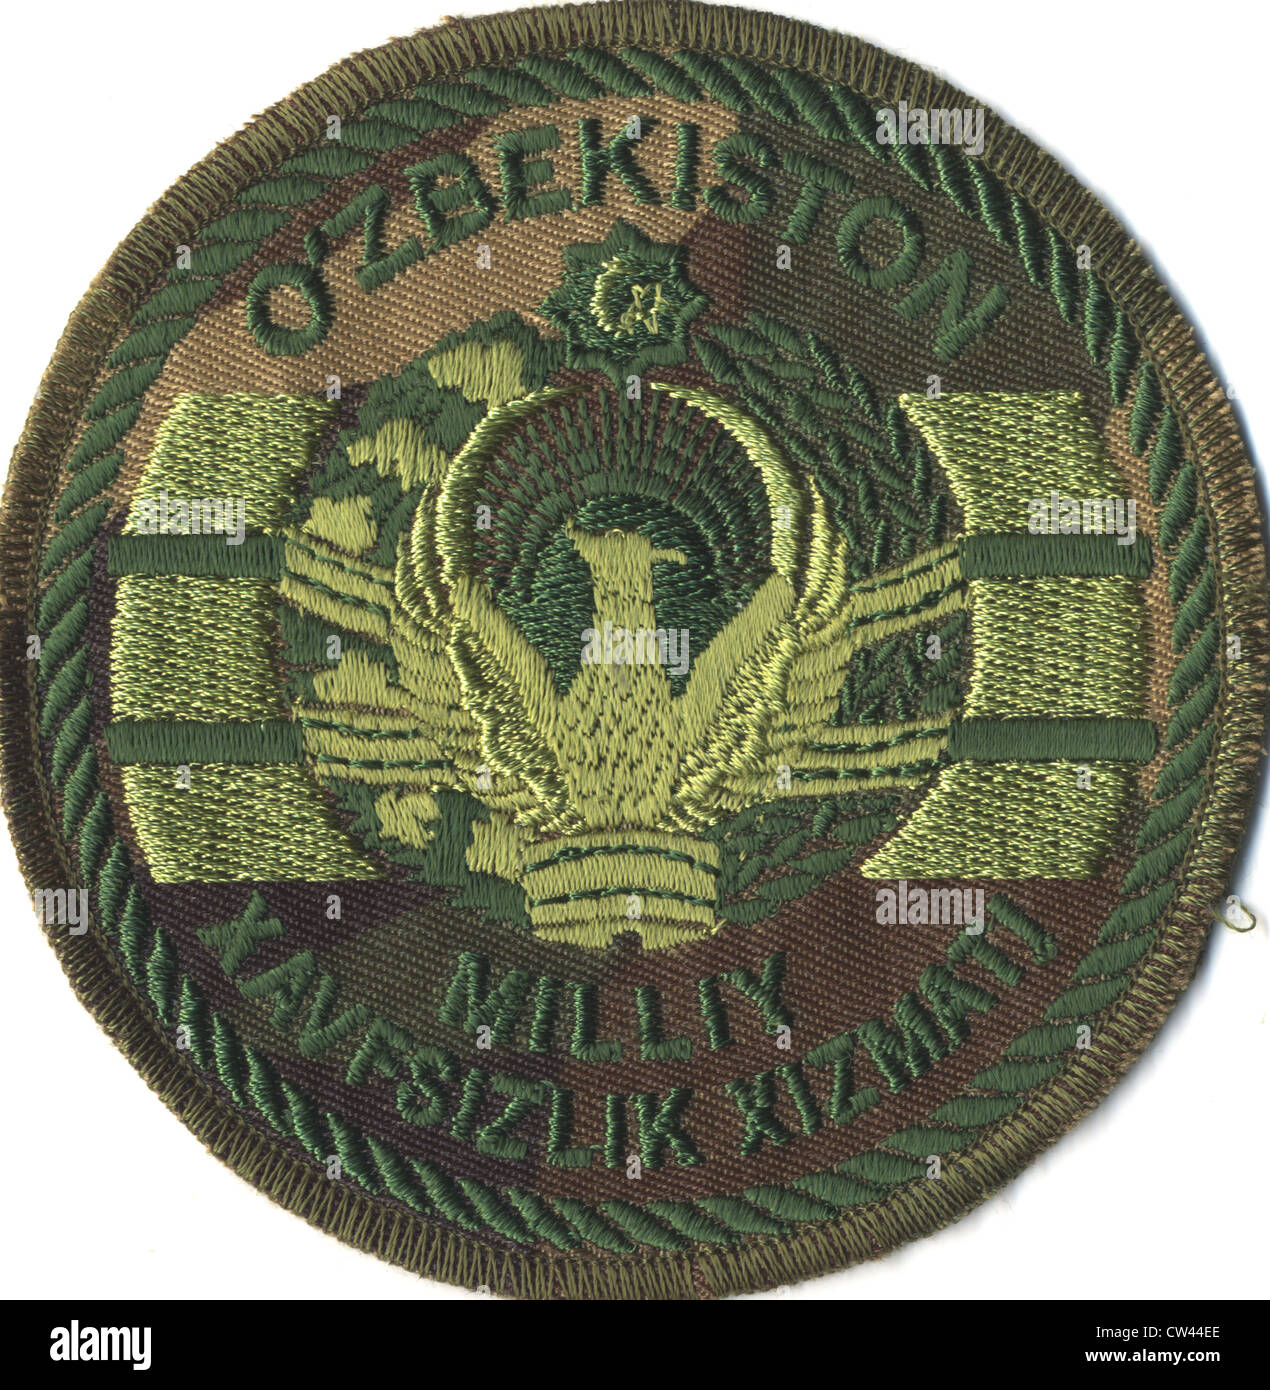 Arm patch of the Uzbekistan national security service for the field clothing. The national security service - Stock Image